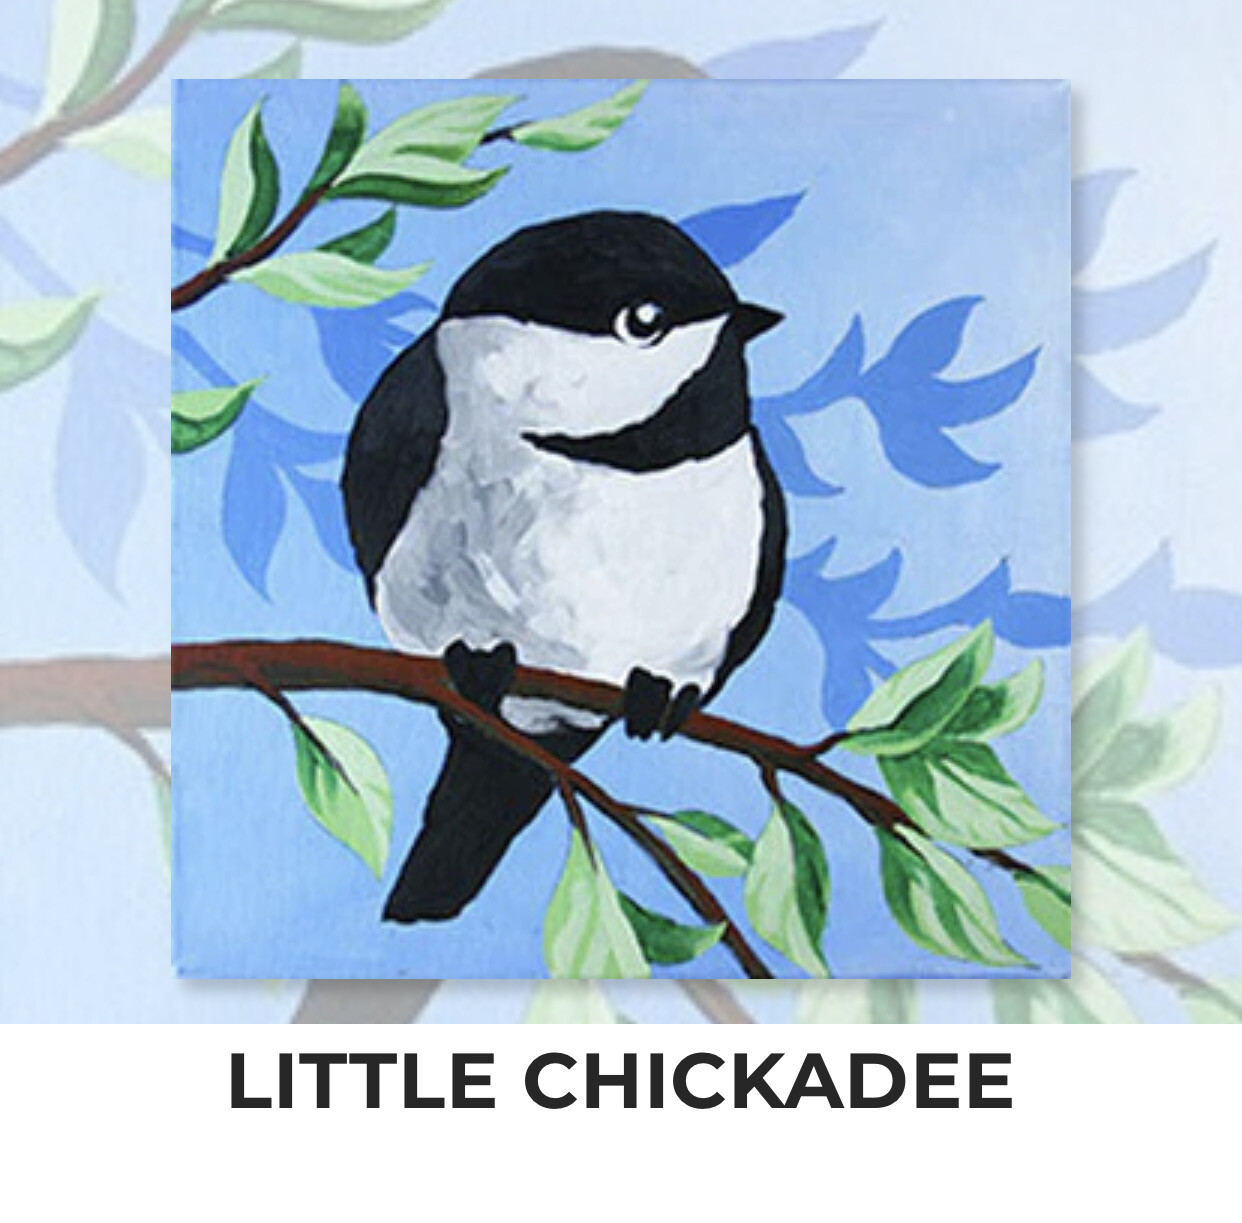 Little Chickadee ADULT OR TWEEN Acrylic Paint On Canvas DIY Art Kit - 3 Week Special Order